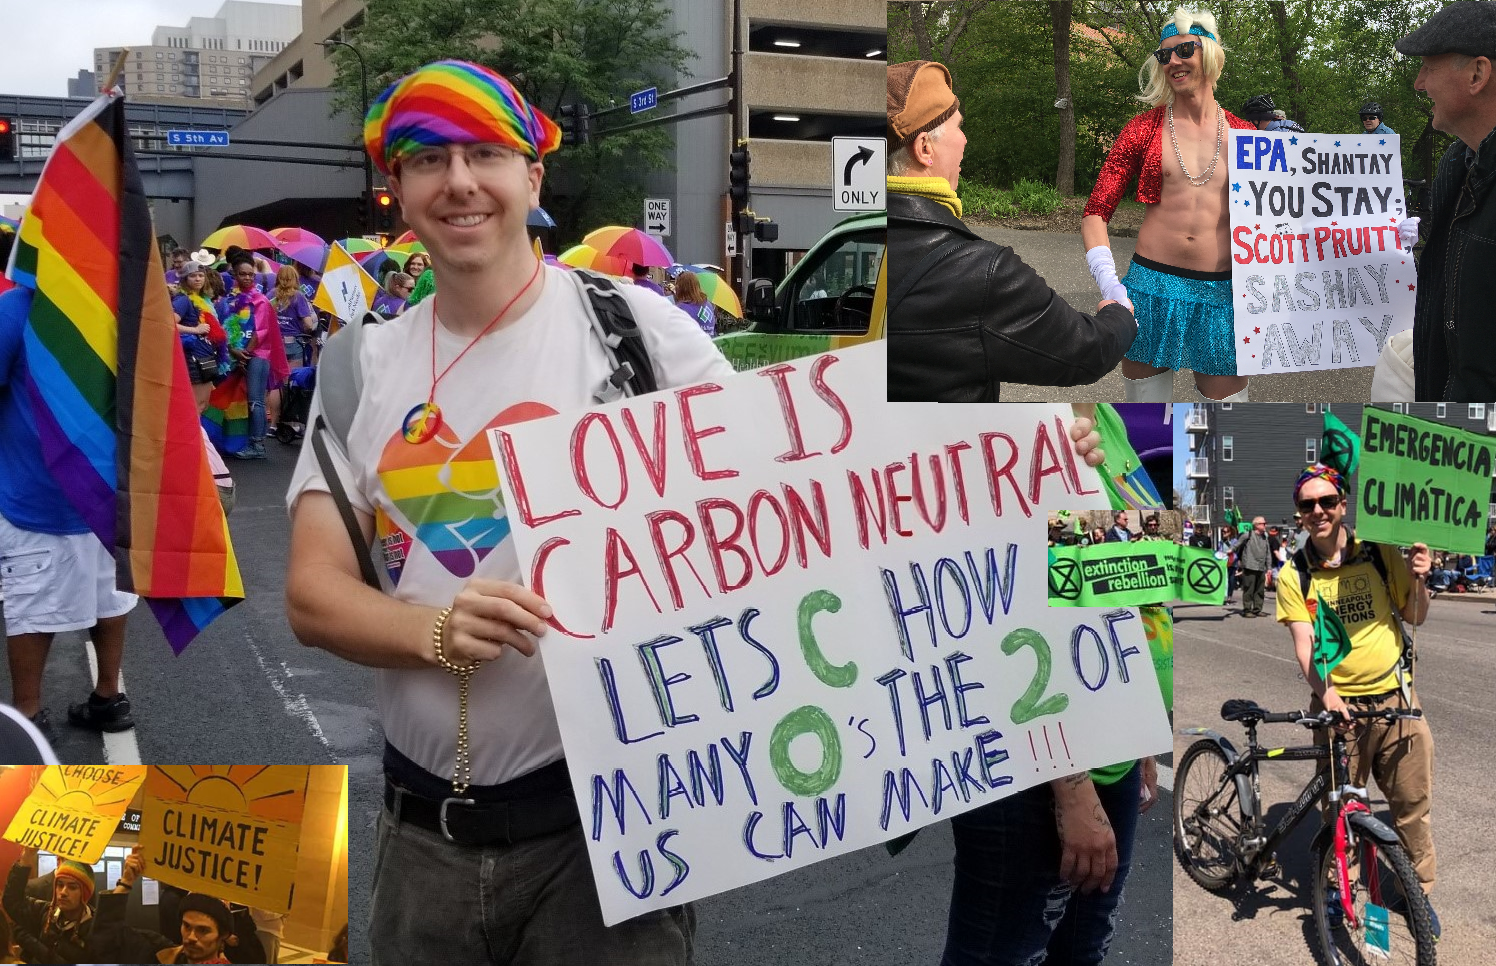 Carbon Man-Dating: A Climate themed Gay Romantic Comedy